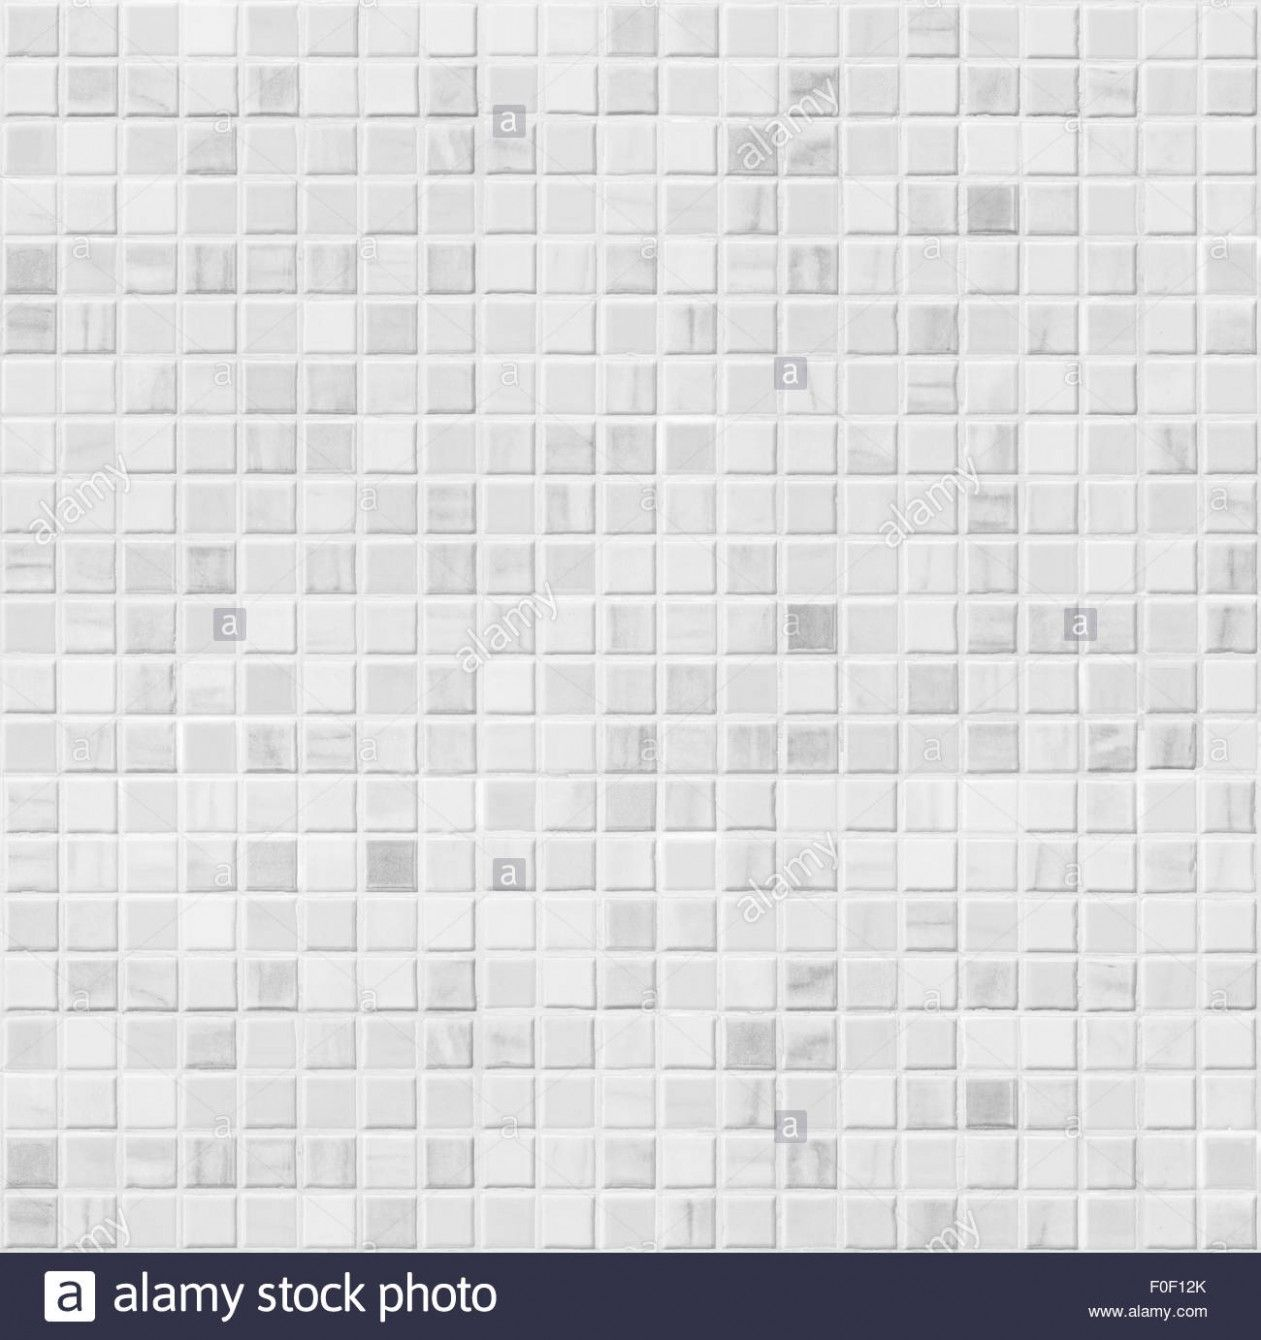 Bathroom Wall Tiles Texture In 2020 Ceramic Tile Bathrooms Wall Tiles Self Adhesive Floor Tiles